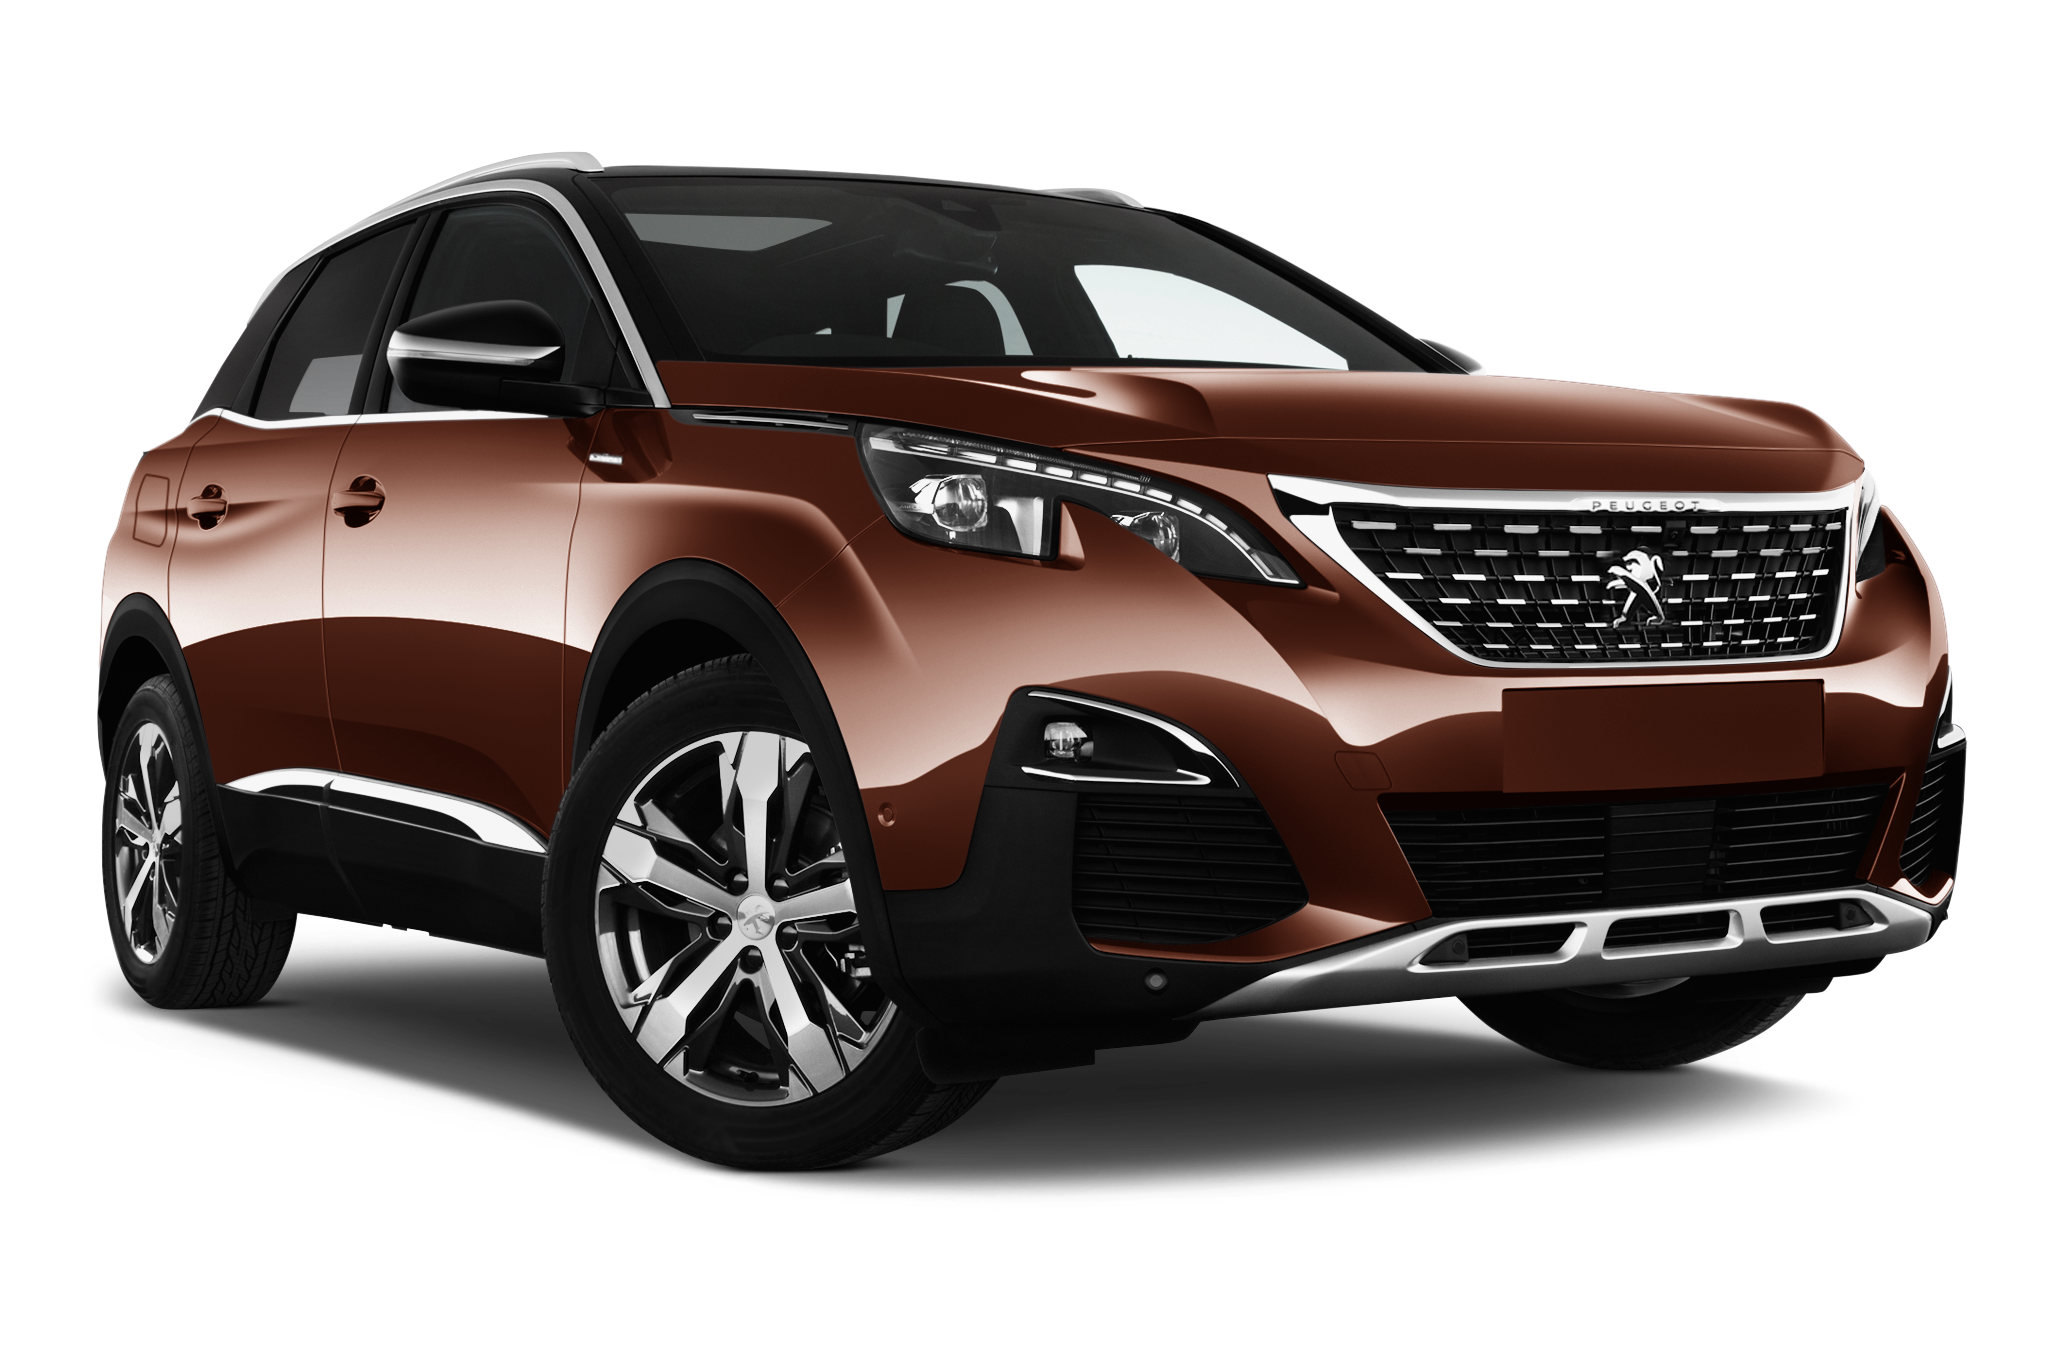 Peugeot 3008 Deals Offers Savings Up To 5 744 Carwow